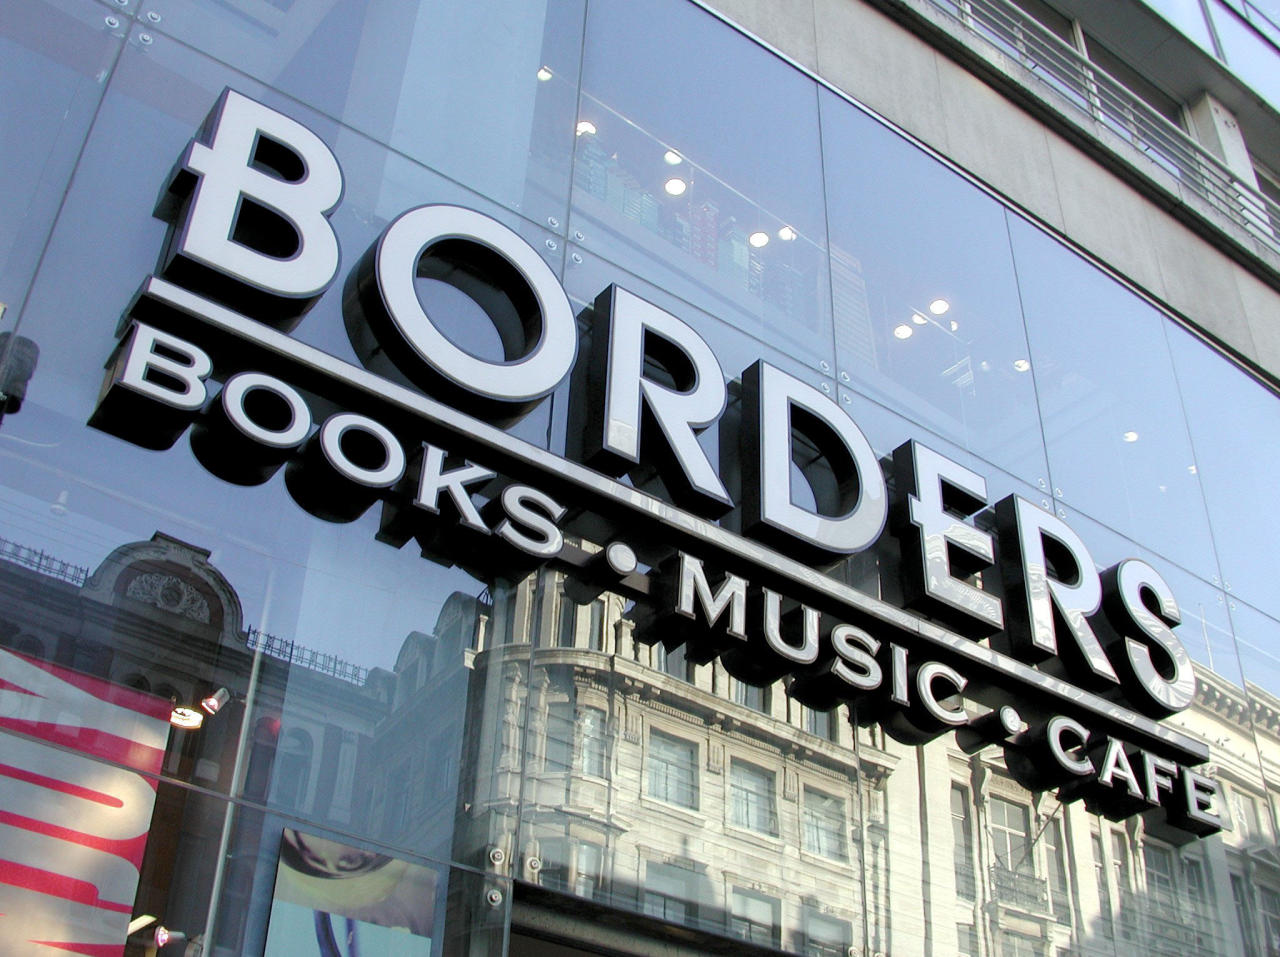 <p>Originally part of the American-owned Borders Group, Borders went independent in 2007. The bookseller, which was originally launched in 1998, was popular, winning several awards, and known for housing Starbucks coffee shops. But, it only last two years after going separate from its US parent: its 45 stores closed in 2009 meaning 1,150 people lost their jobs just before Christmas. (Photo by Alex Segre/REX/Shutterstock) </p>